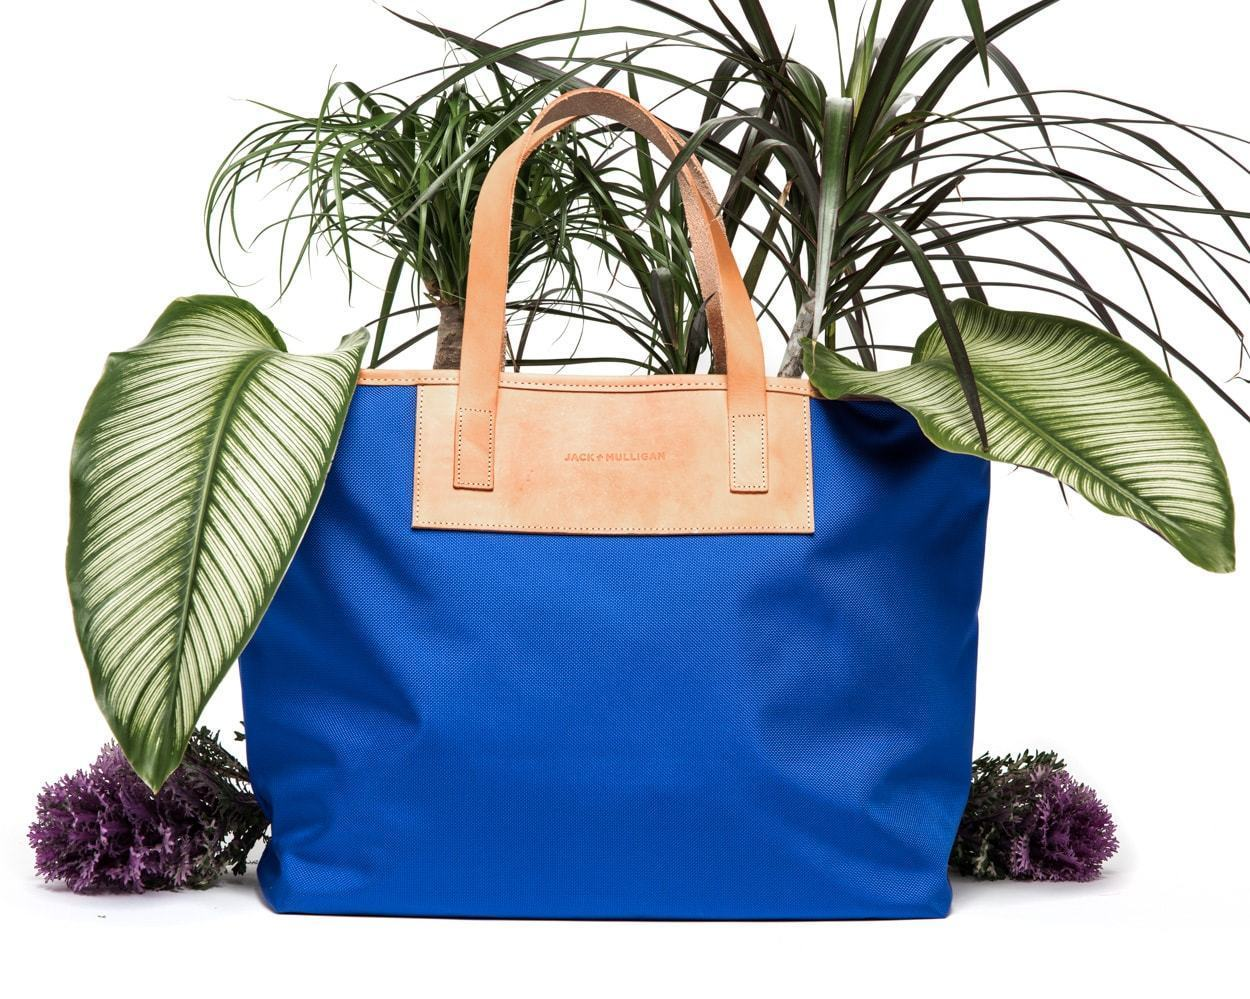 The Pablo Tote's Newest Colors